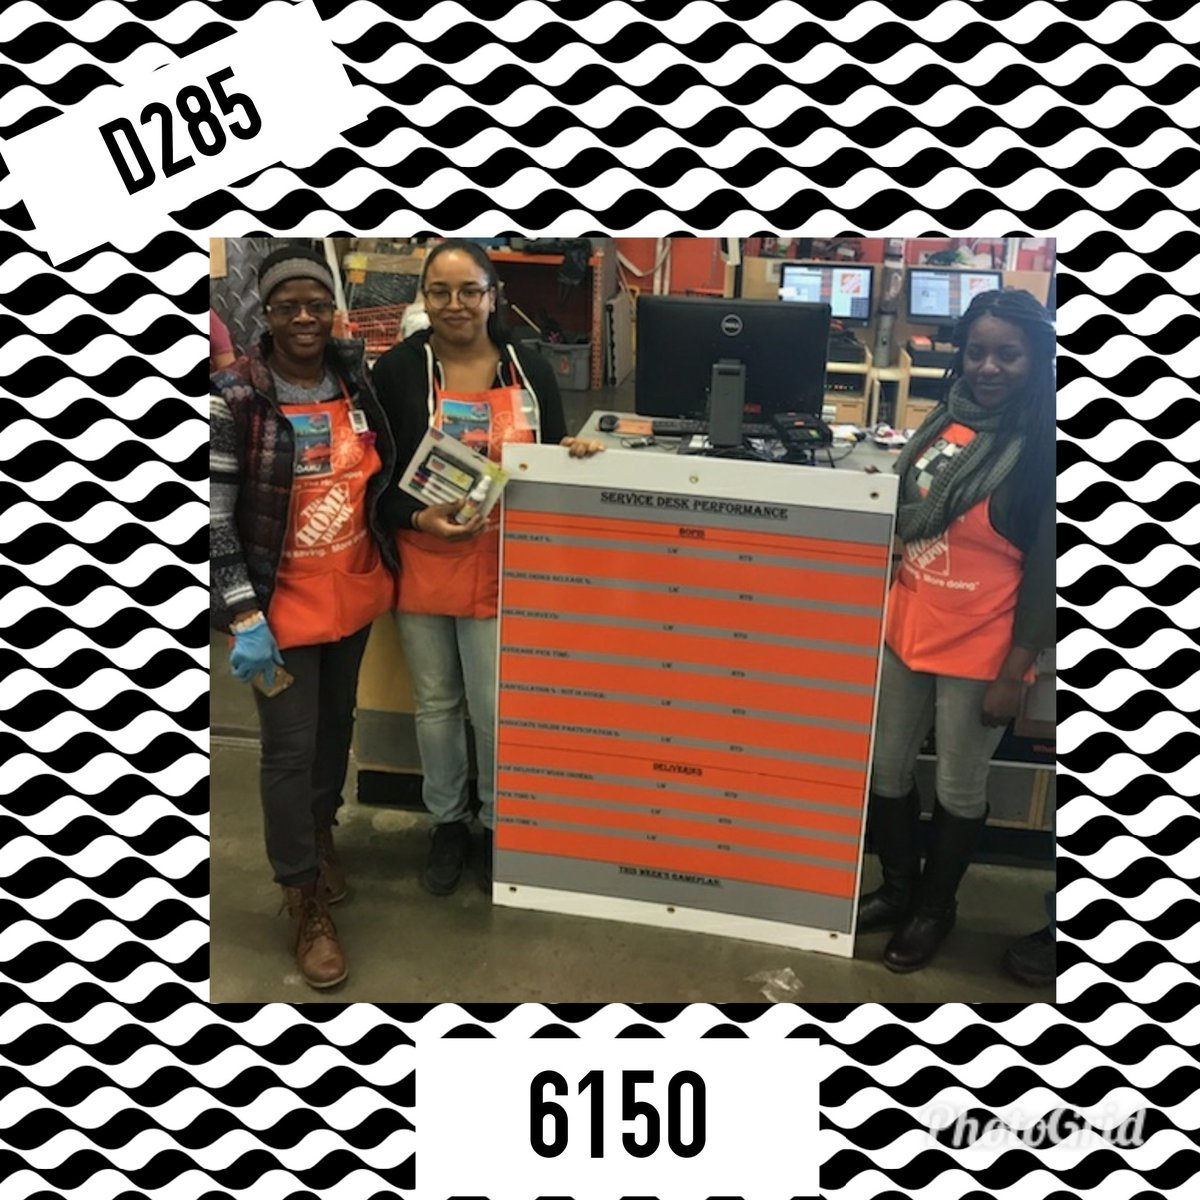 Always Striving To Improve The Online Experience At Home Depot Store 6150 Receiving Their Service Desk Performance Board BelloMobellopictwitter